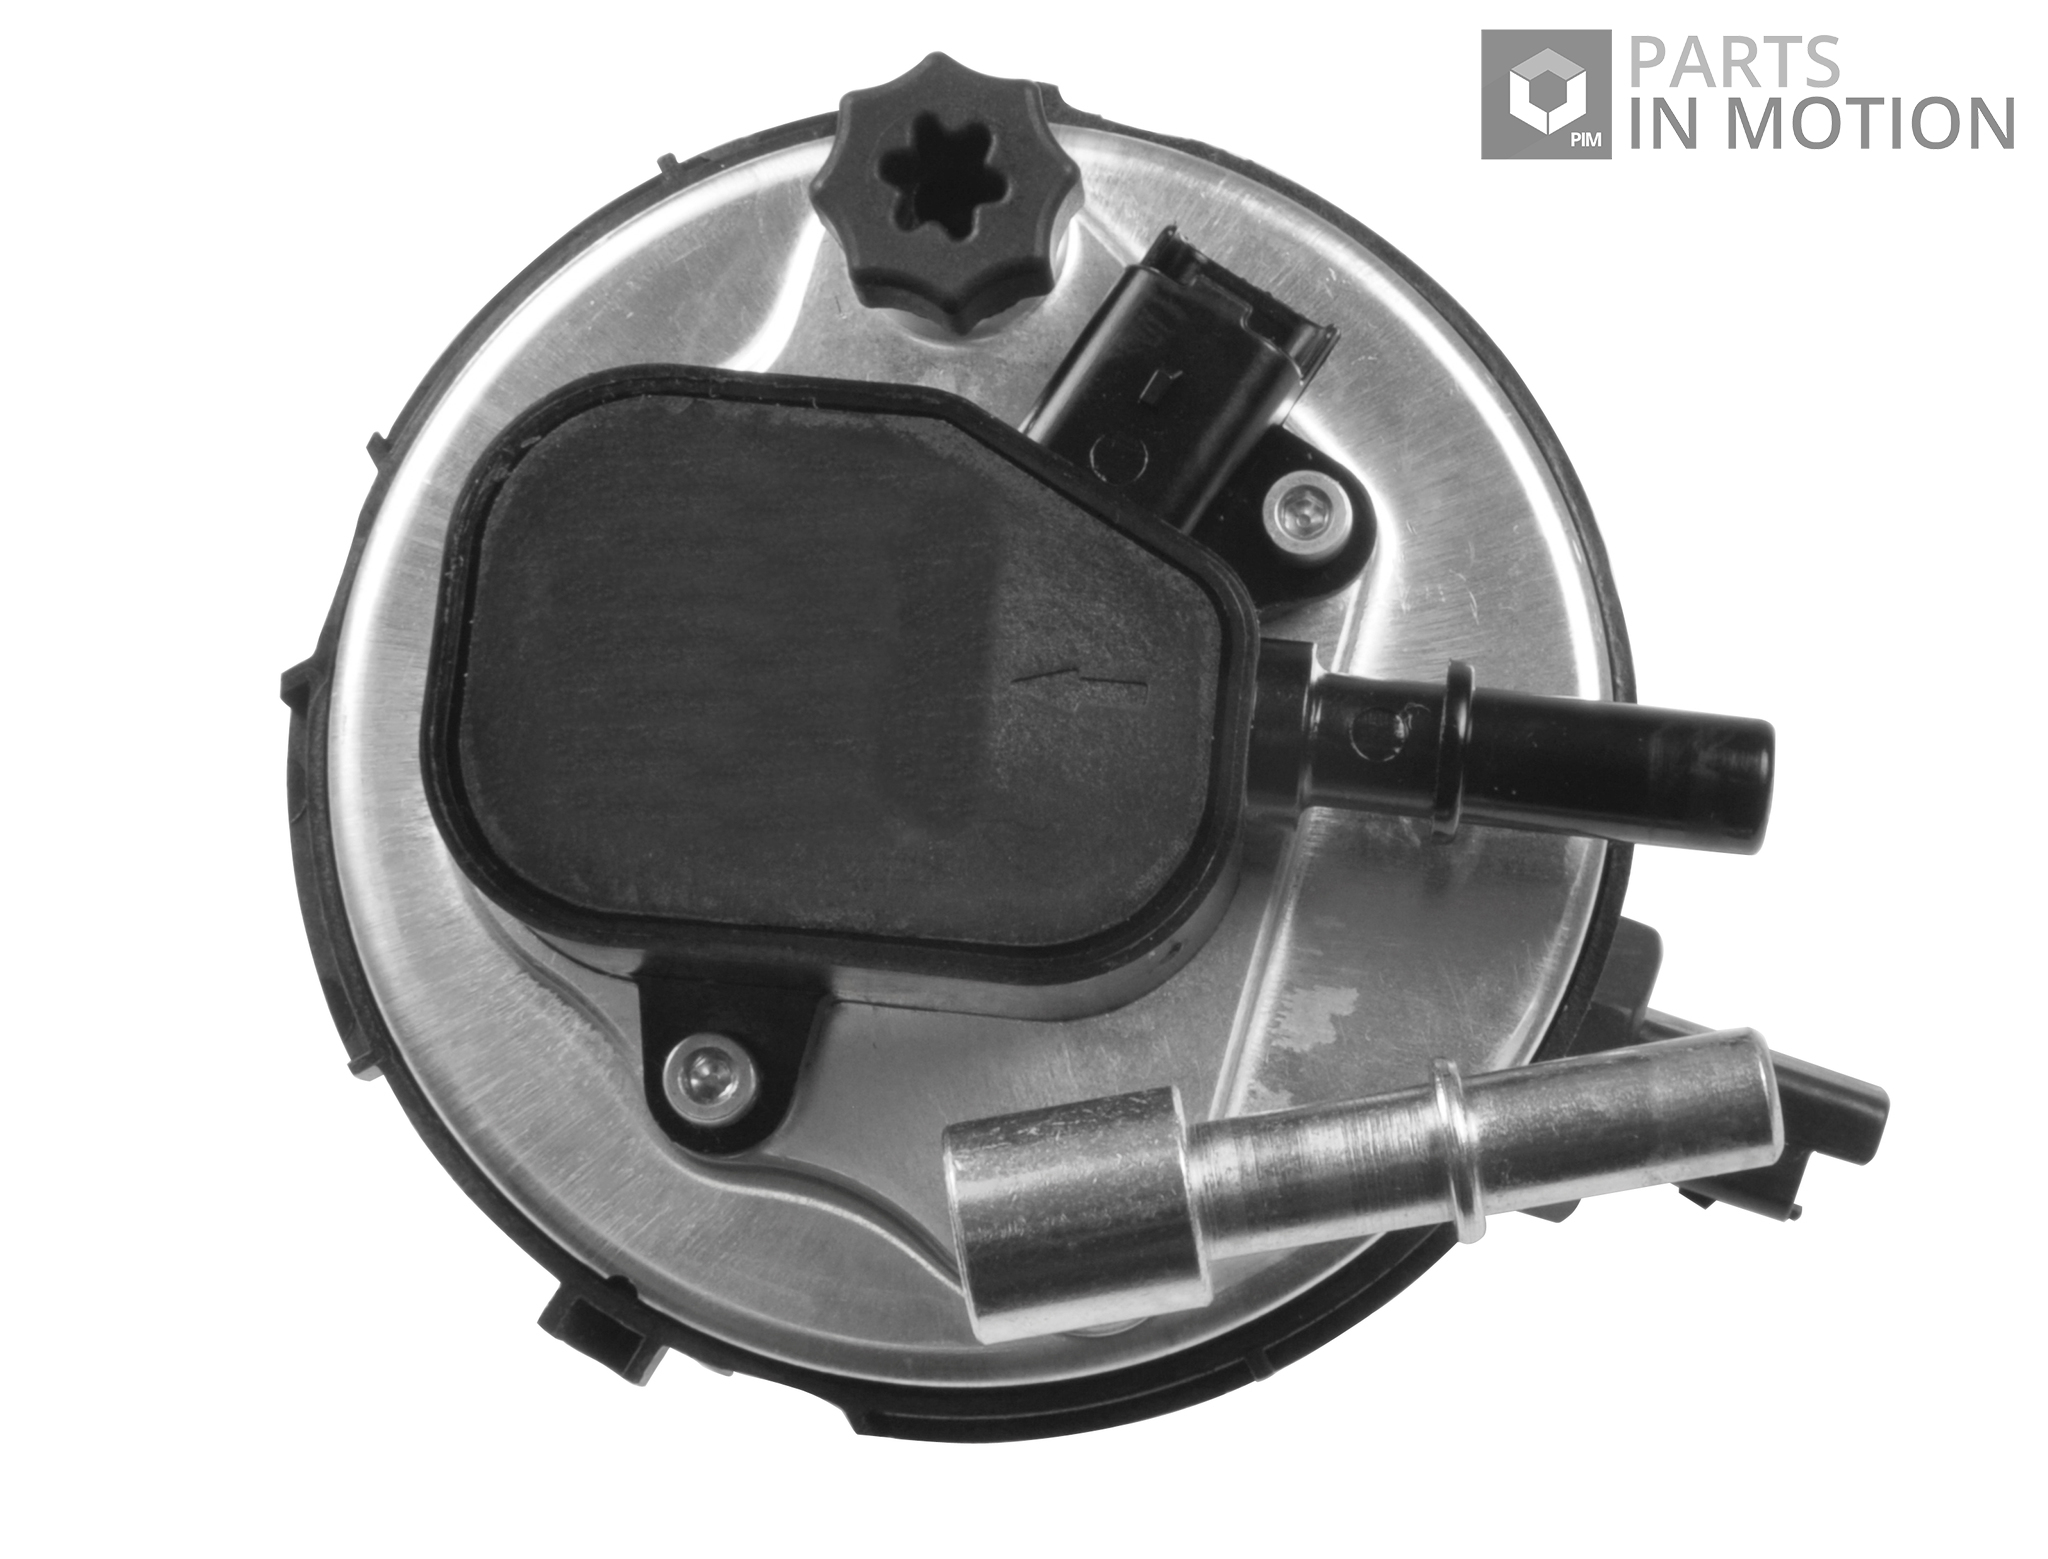 Fuel Filter Fits Mazda 2 16d 08 To 15 Adl 1386037 Y60313480 Quality 2007 Rx 8 Location Blue Print Adm52343 4